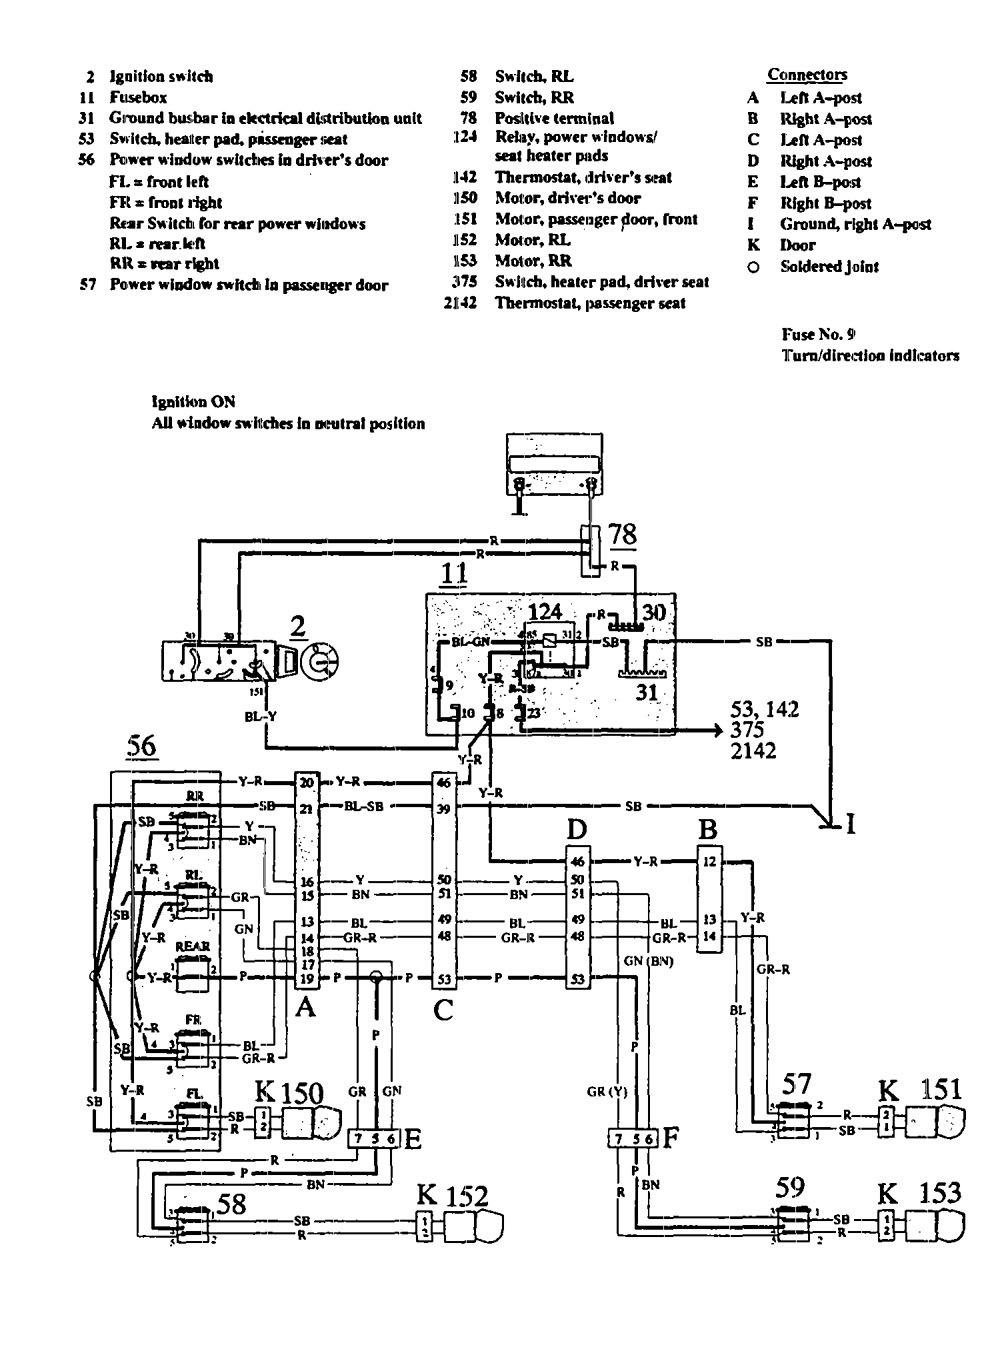 [SCHEMATICS_4CA]  Volvo 940 (1991) - wiring diagrams - power windows - Carknowledge.info | 1991 Volvo 940 Wiring Diagram |  | Carknowledge.info